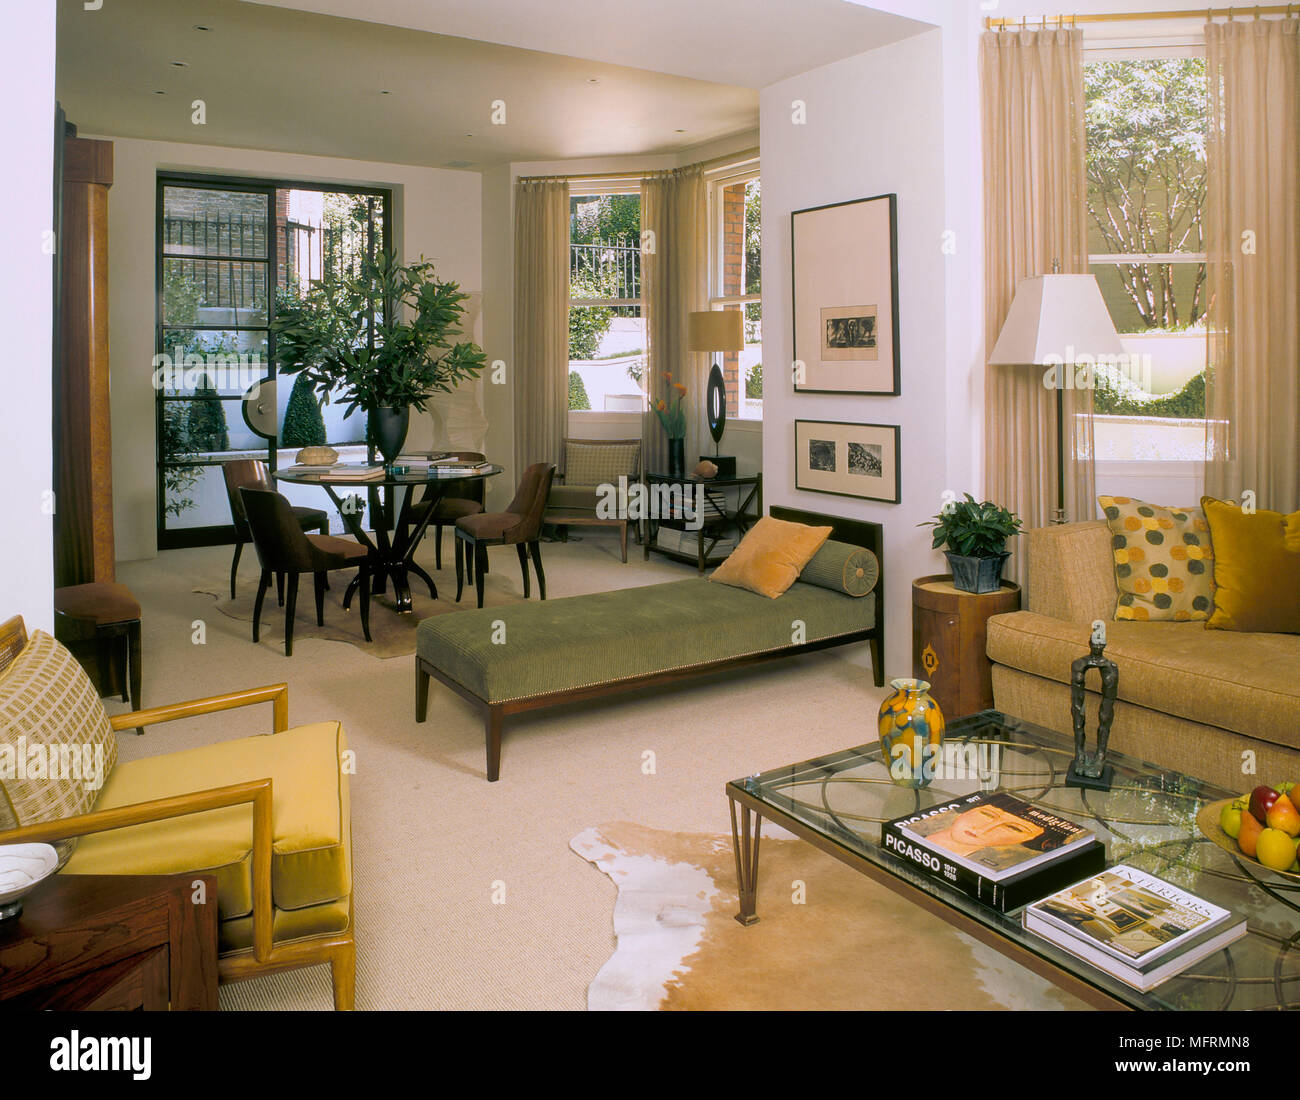 A Modern Open Plan Sitting Room With Dining Area Upholstered